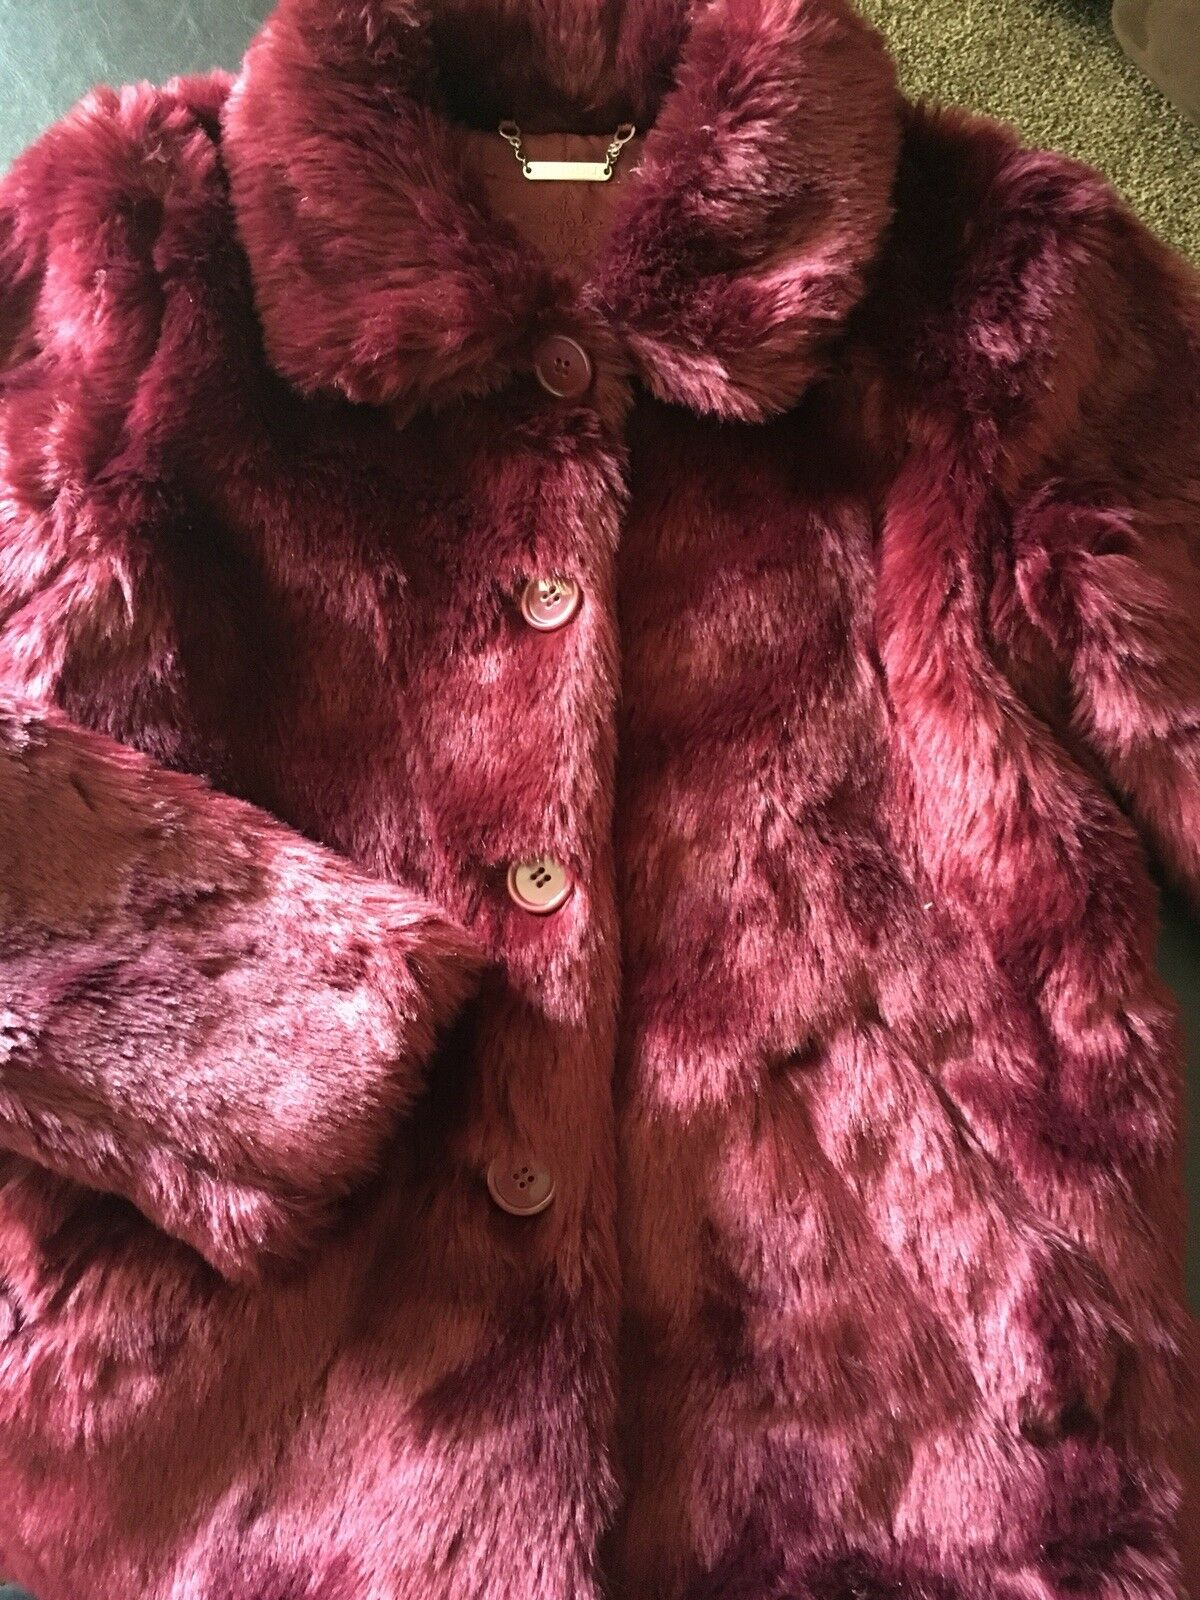 Vintage Vintage Vintage Looking Faux Fur Coat-NEW sIZE sm 337430